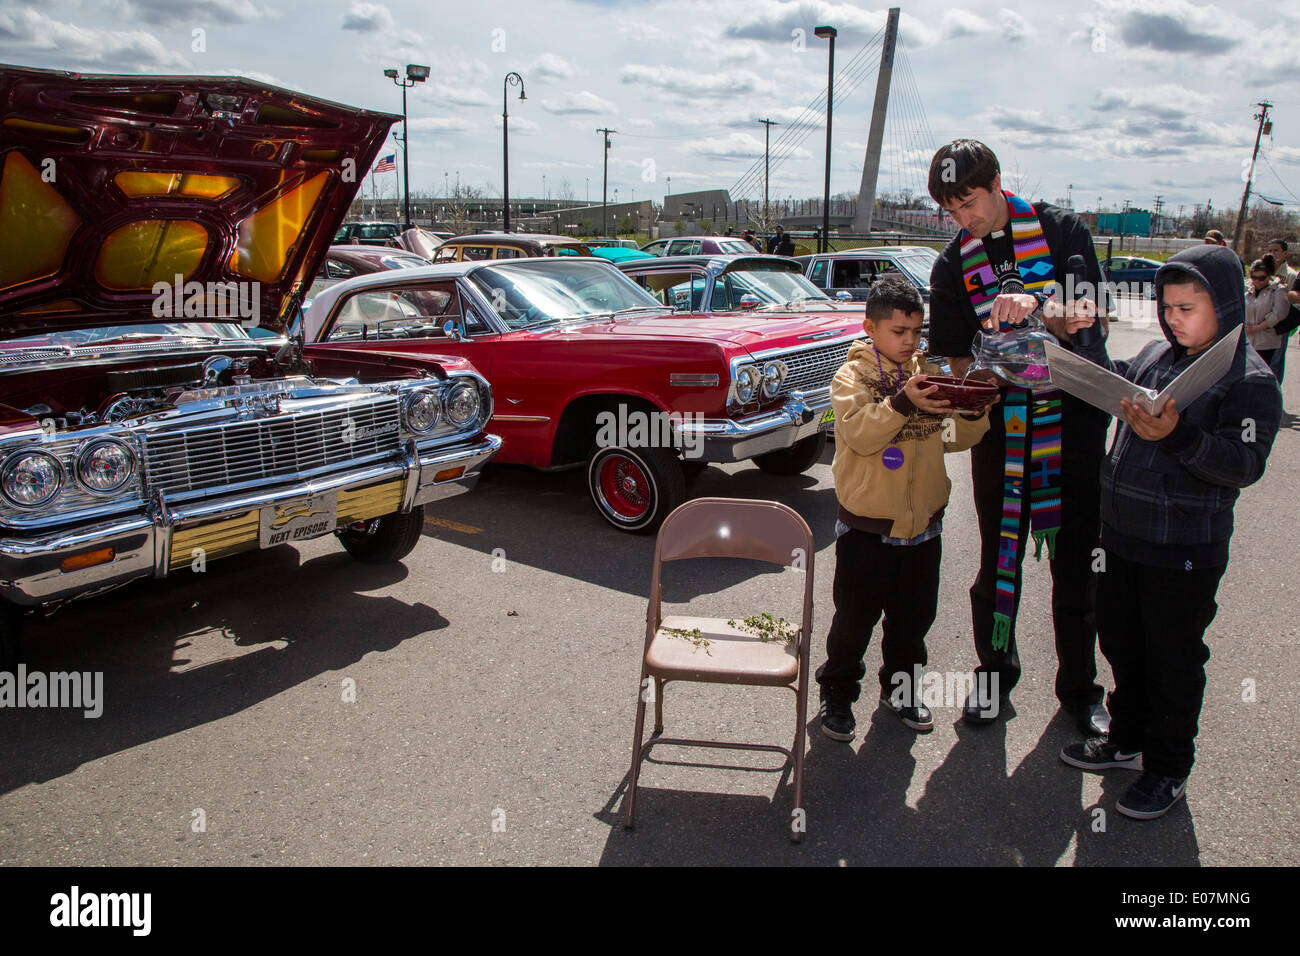 Detroit, Michigan - Rev. John Cummings, pastor of Grace In Action Lutheran Church, performs the Blessing of the Lowriders. - Stock Image